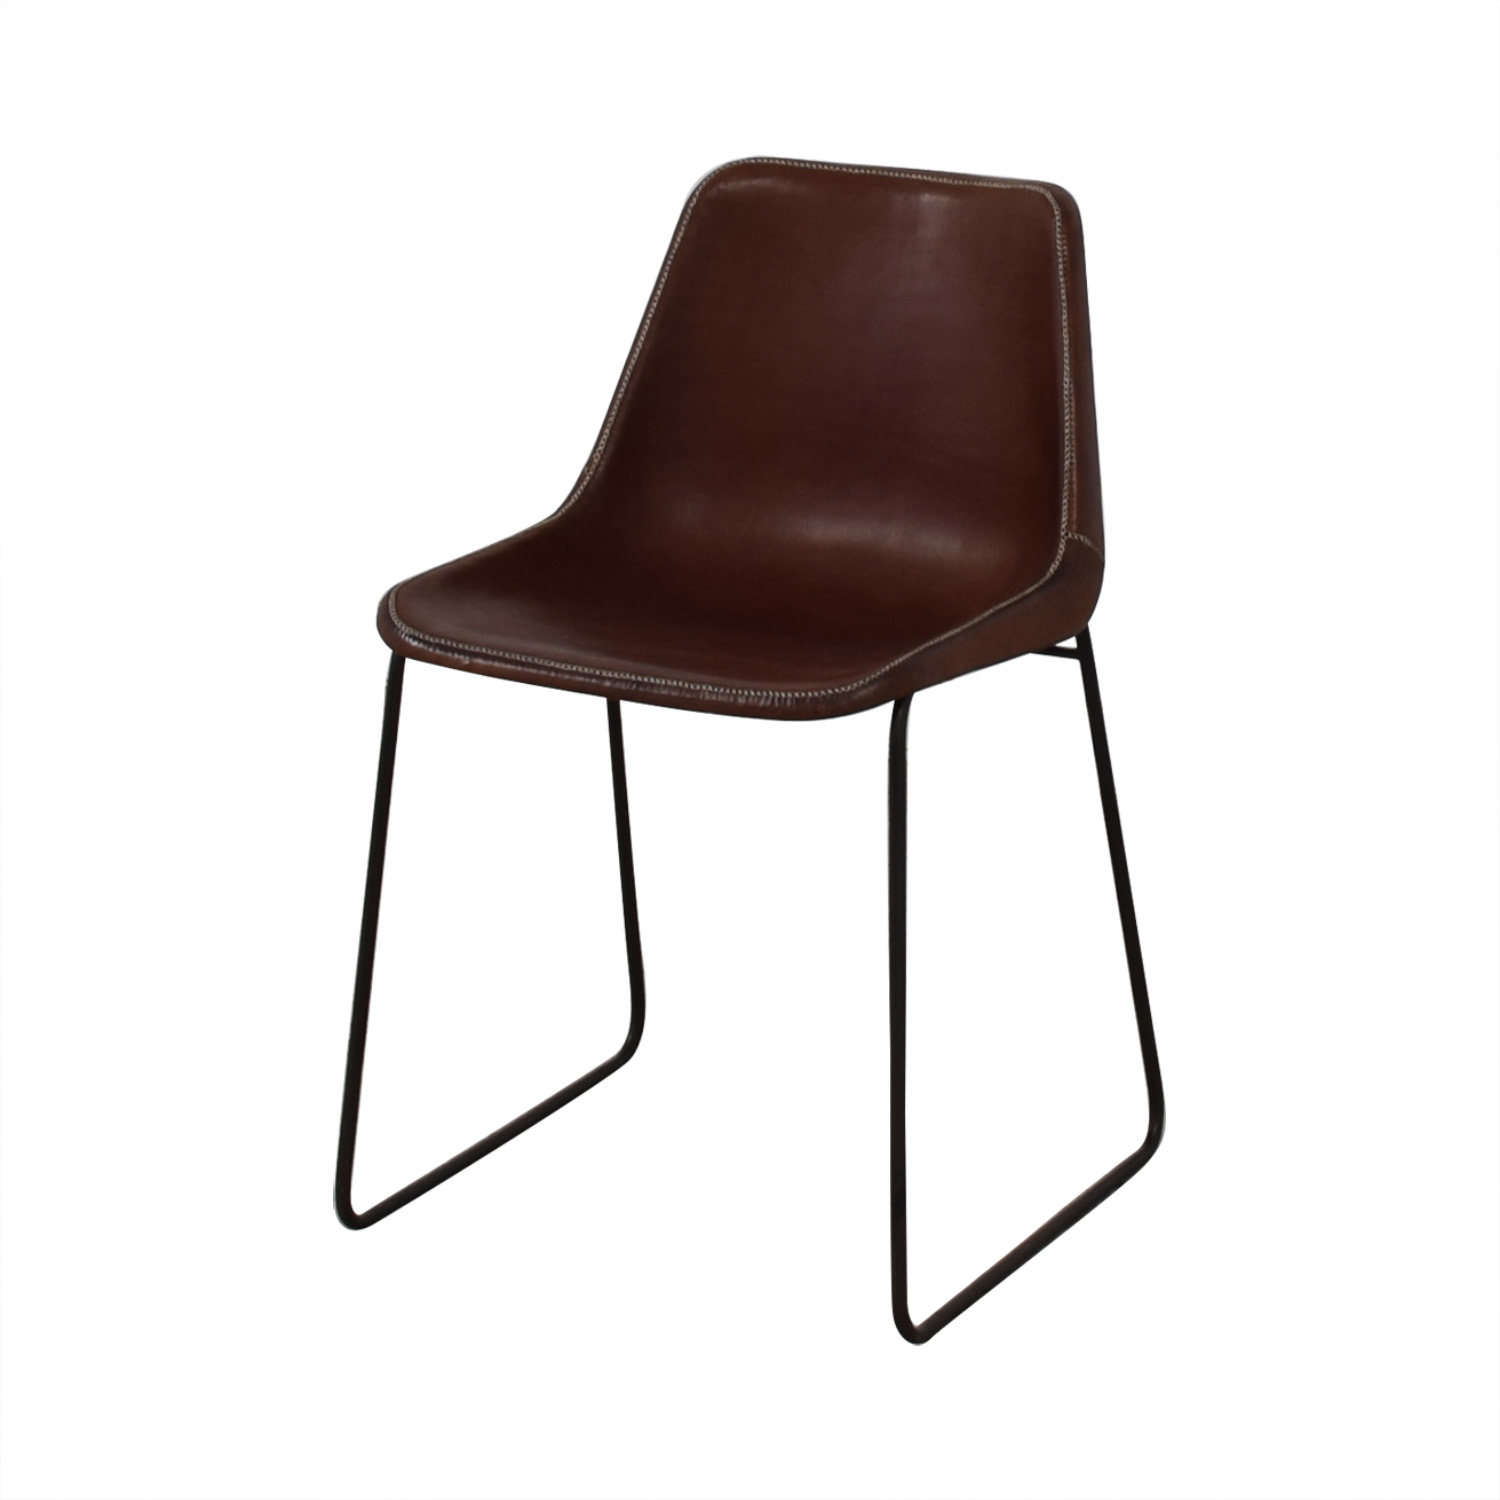 ABC Carpet & Home ABC Carpet & Home Giron Brown Leather Chair on sale